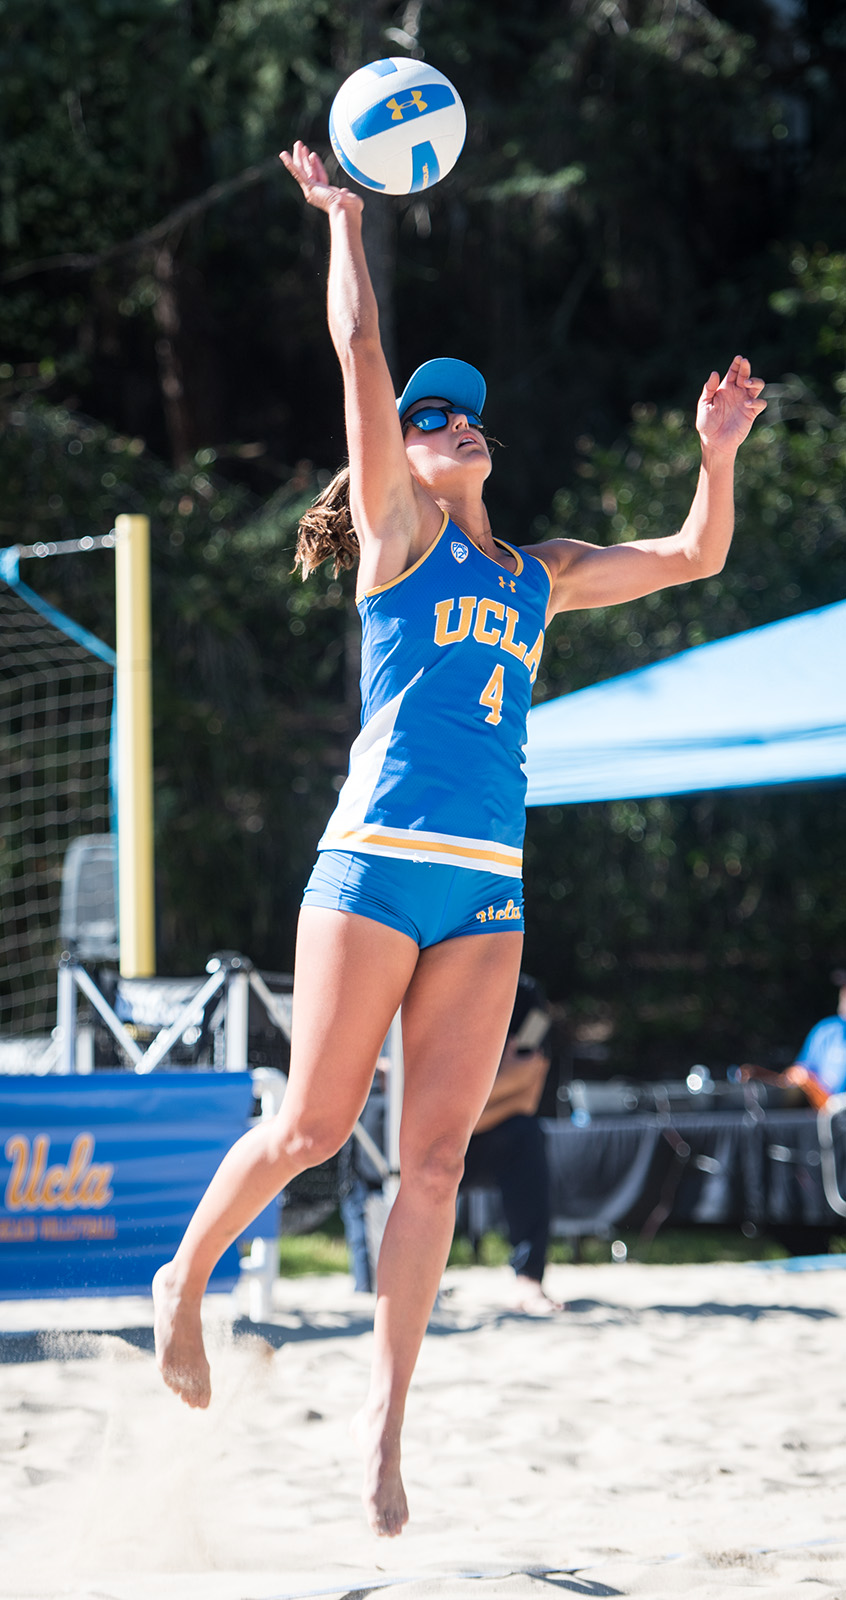 Beach Volleyball Players Compete In International Tournaments On Road To Olympics Daily Bruin